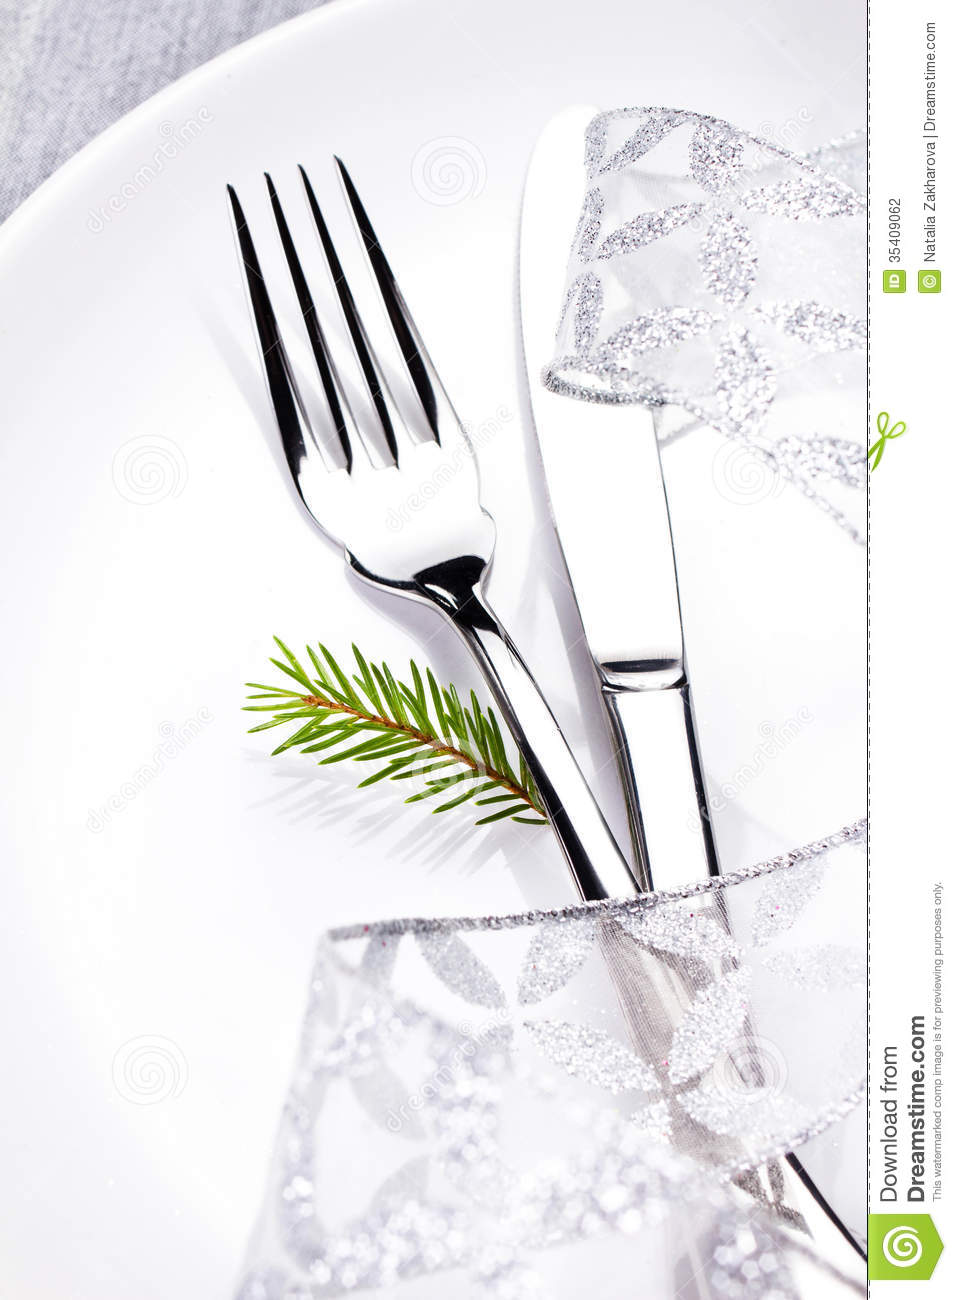 Christmas Table Setting In White And Silver With Christmas